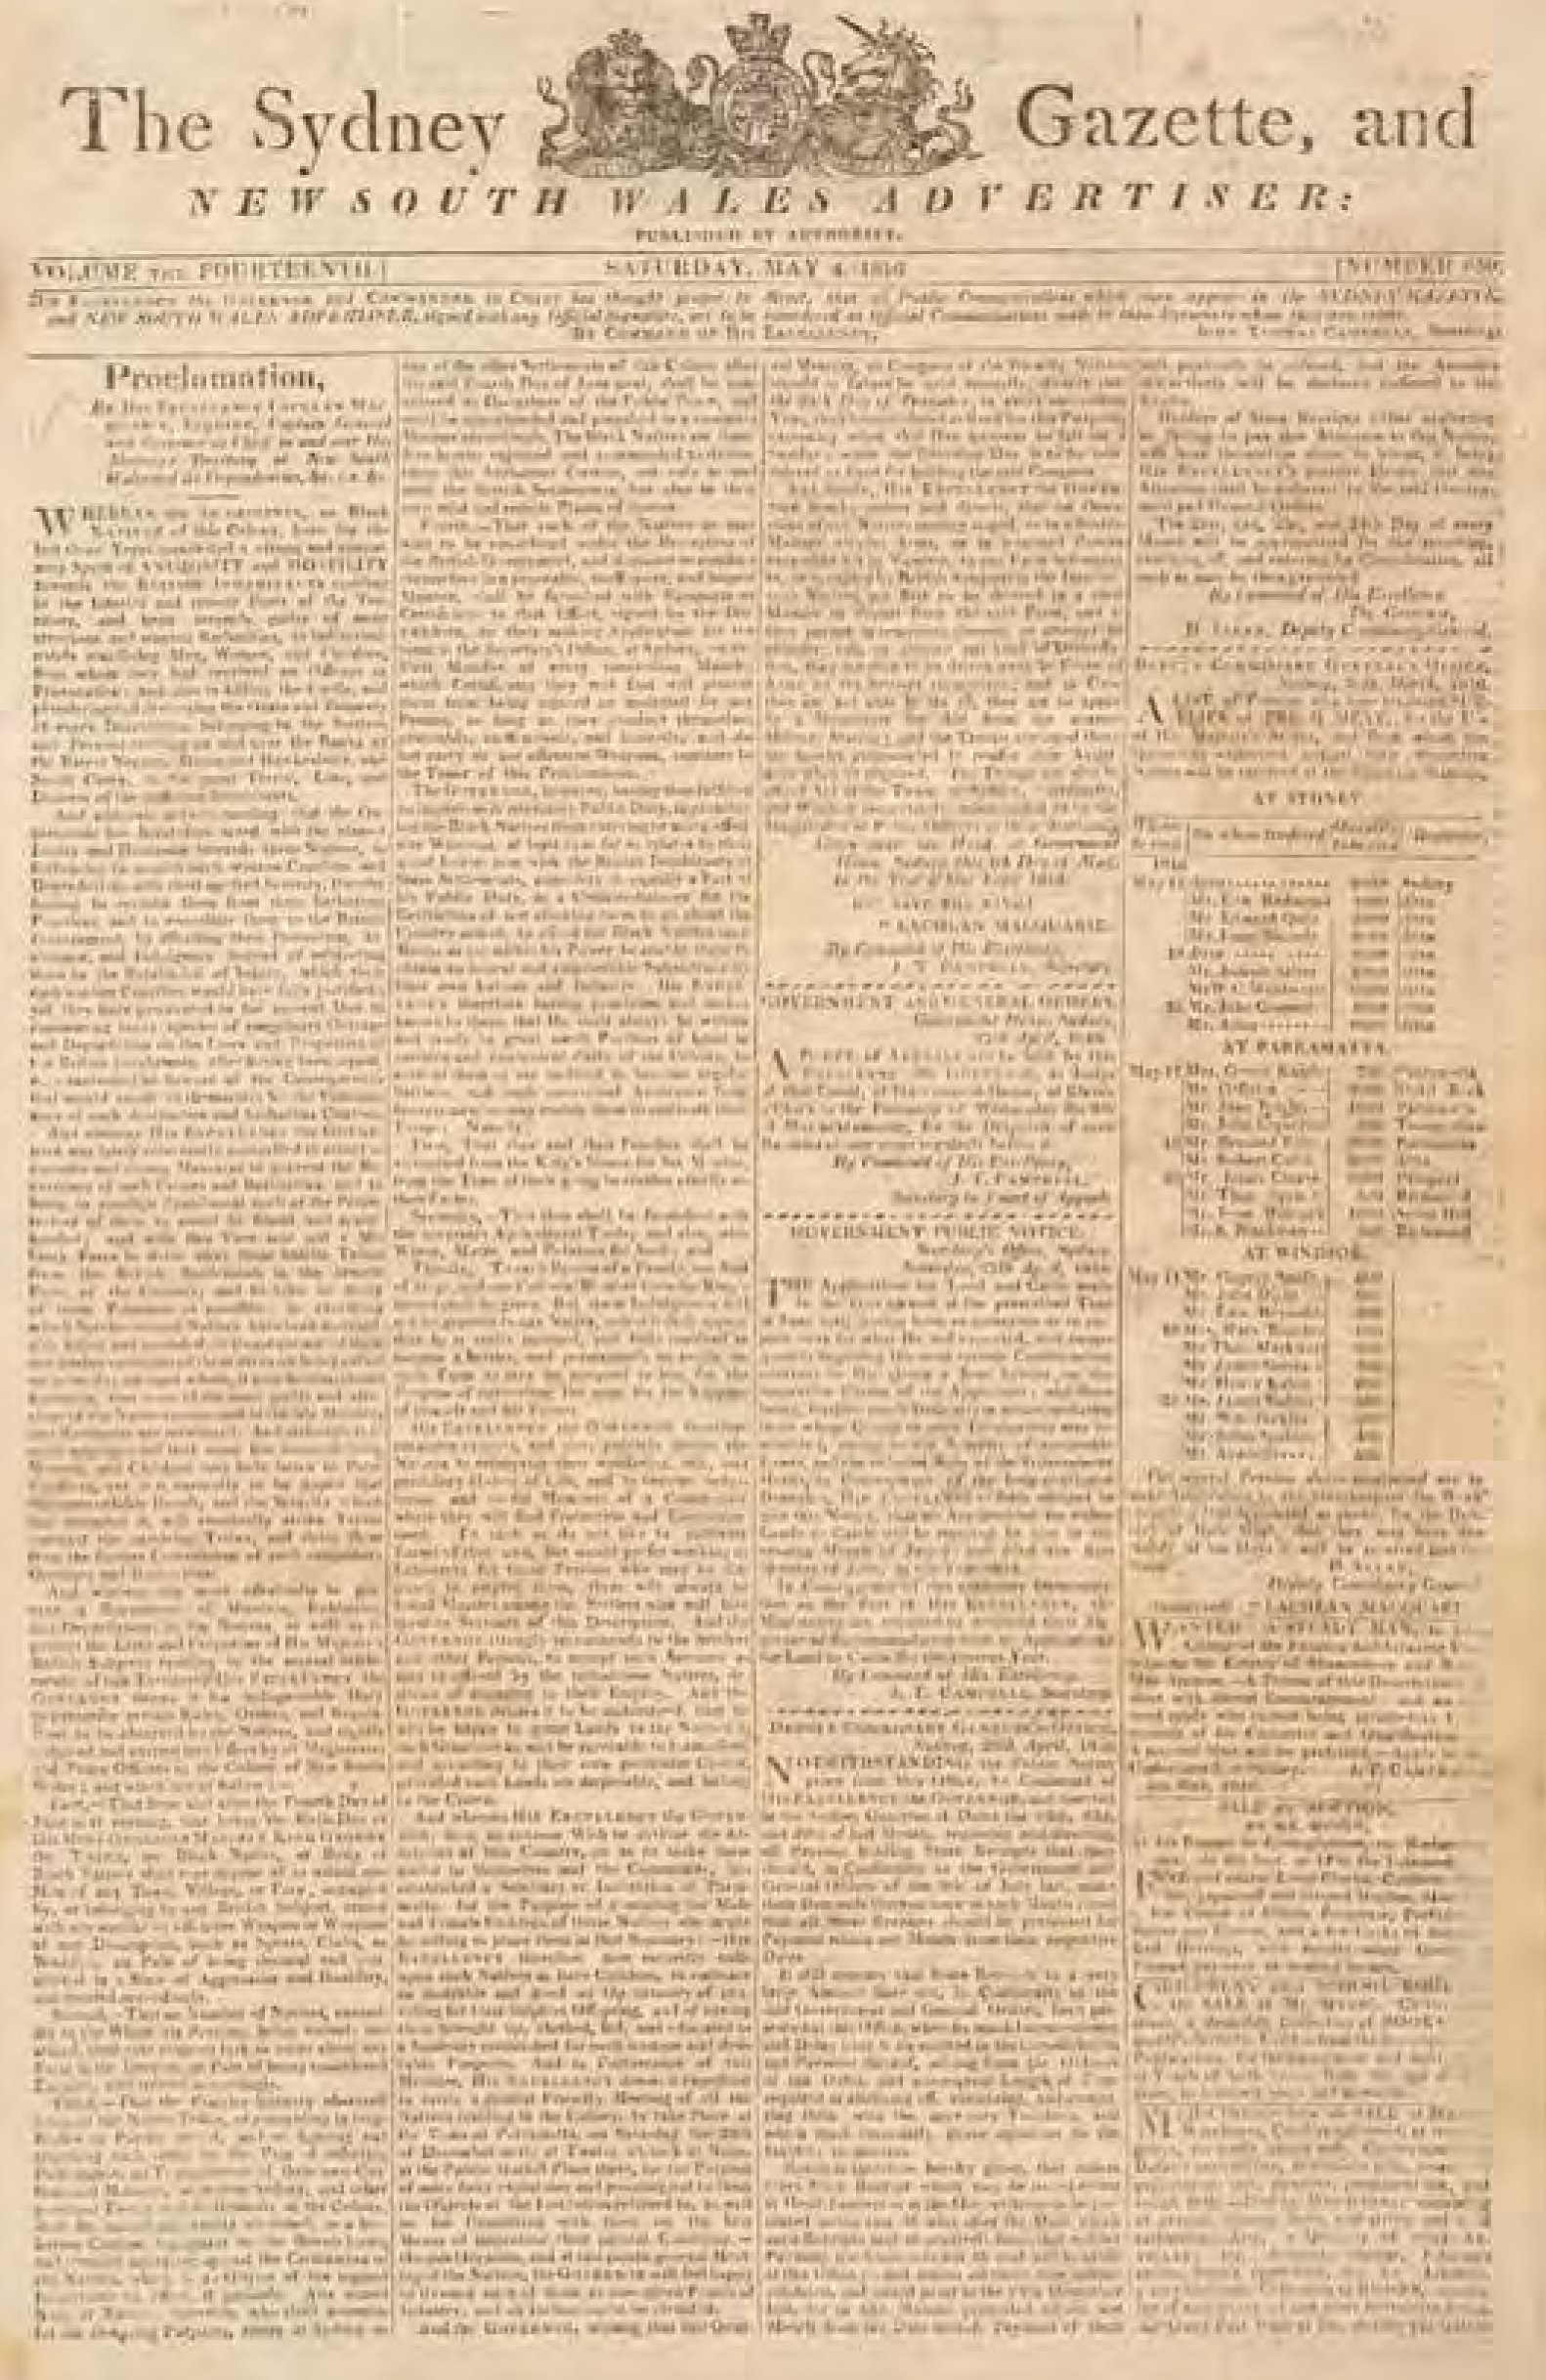 Macquarie's proclamation from The Sydney Gazette